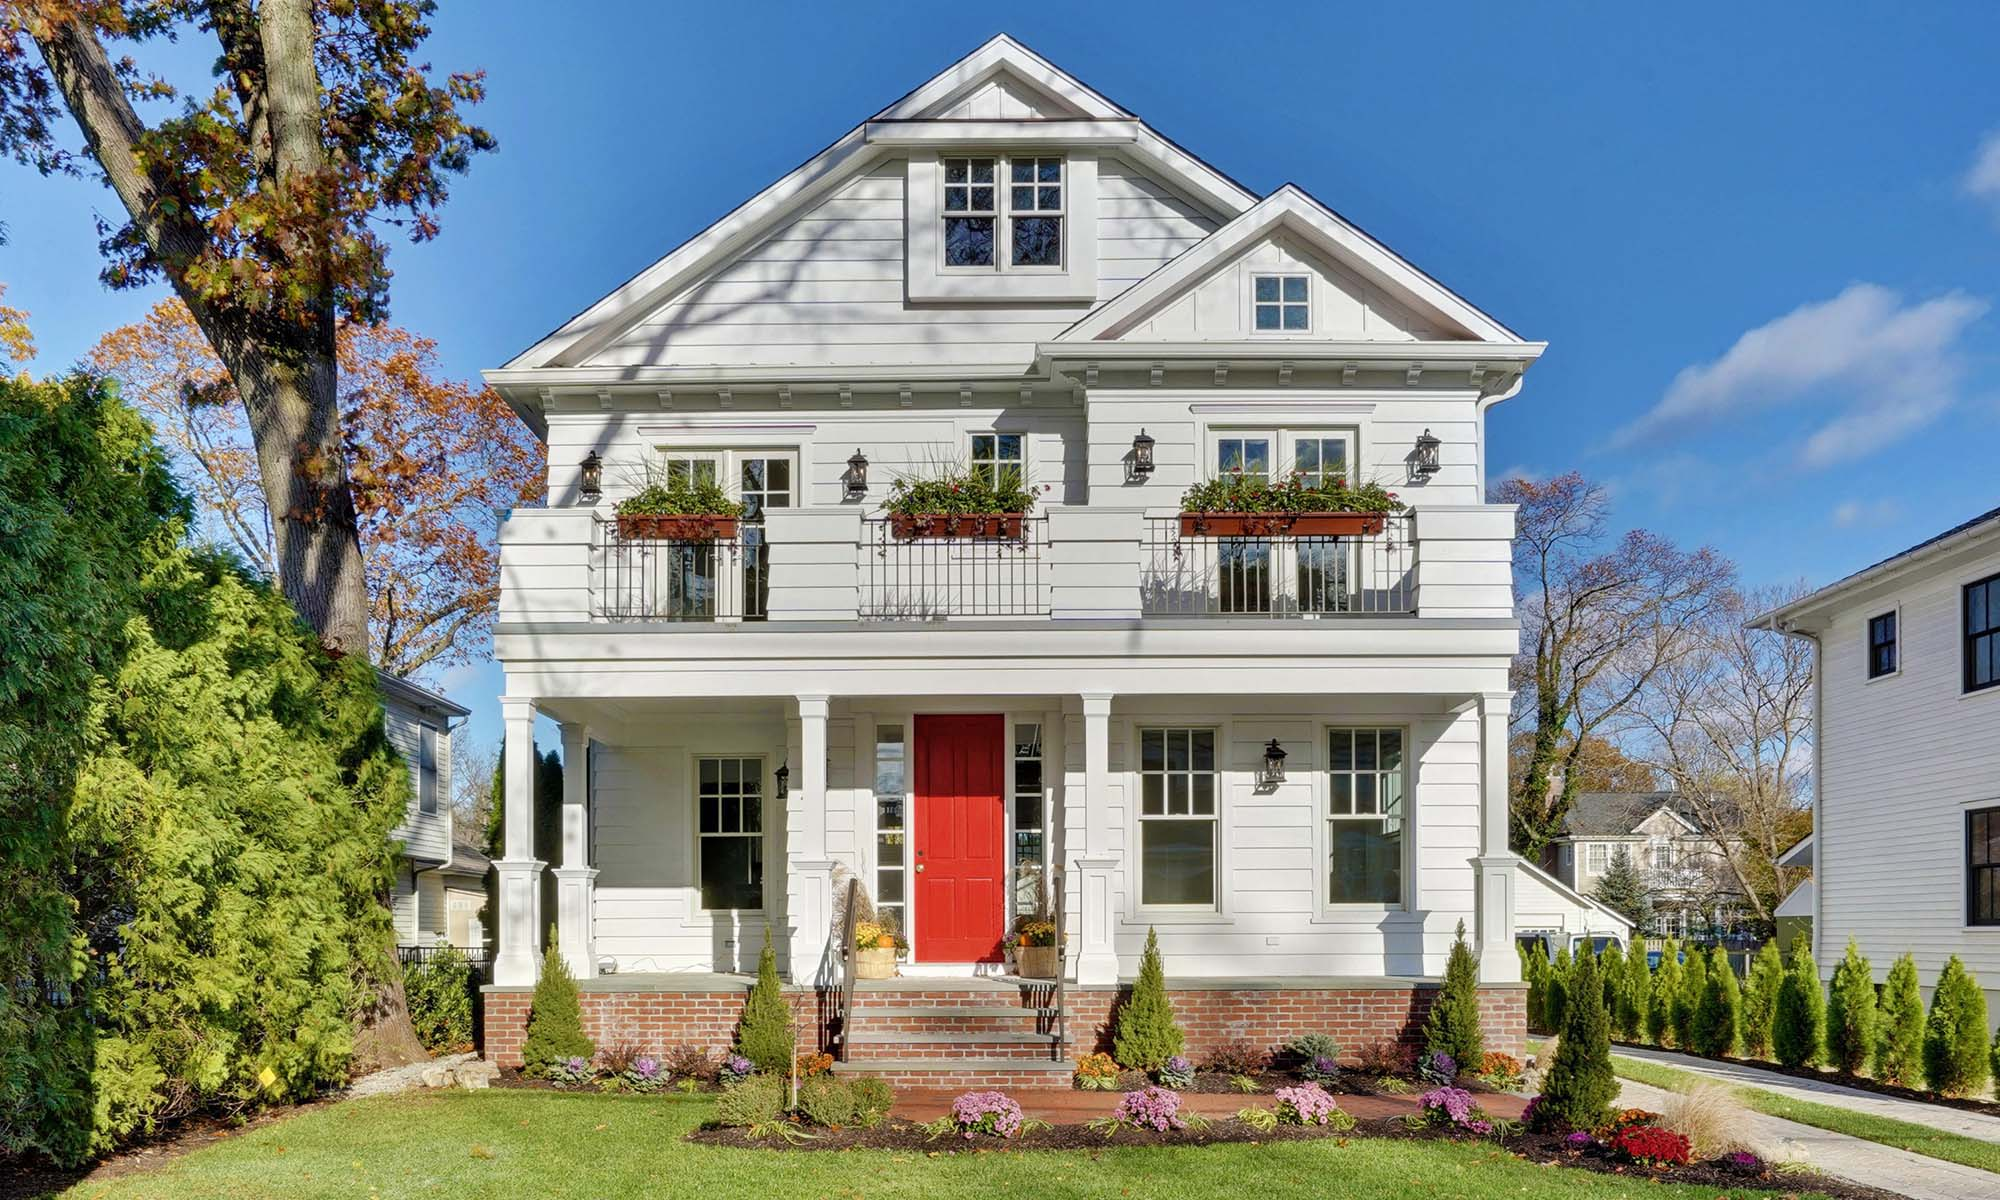 red brick home with white siding and a red front door